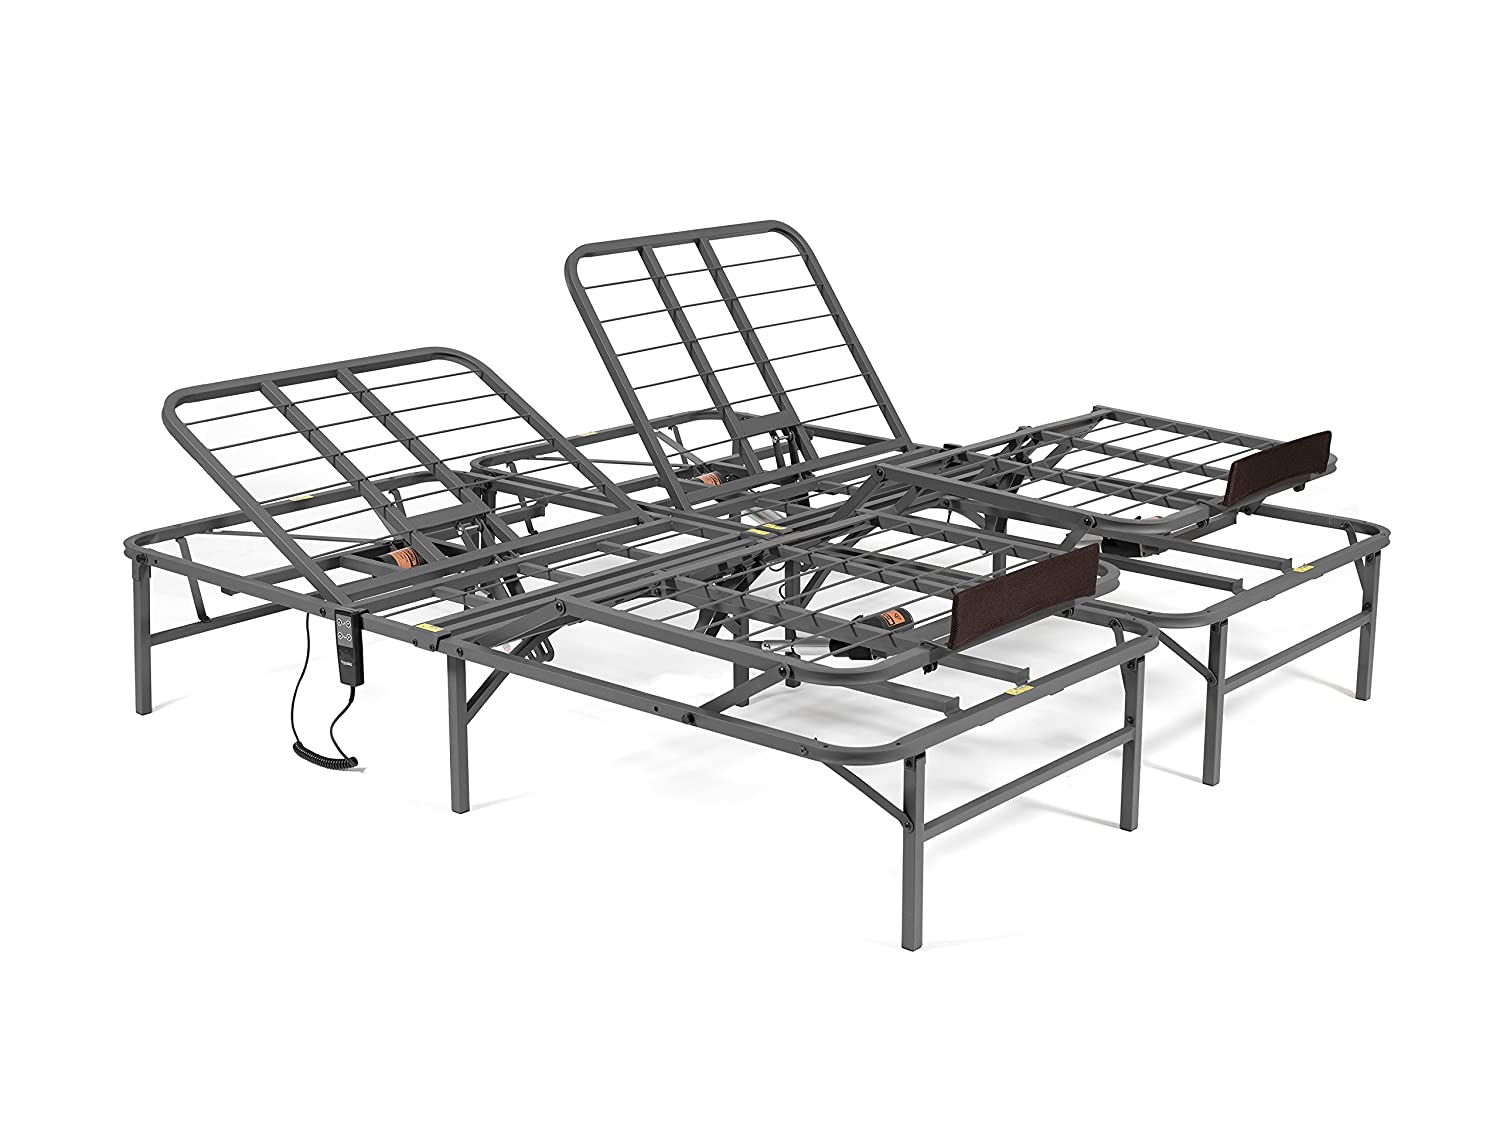 PragmaBed Pragmatic Adjustable Bed Frame, Head and Foot, California King, Gray